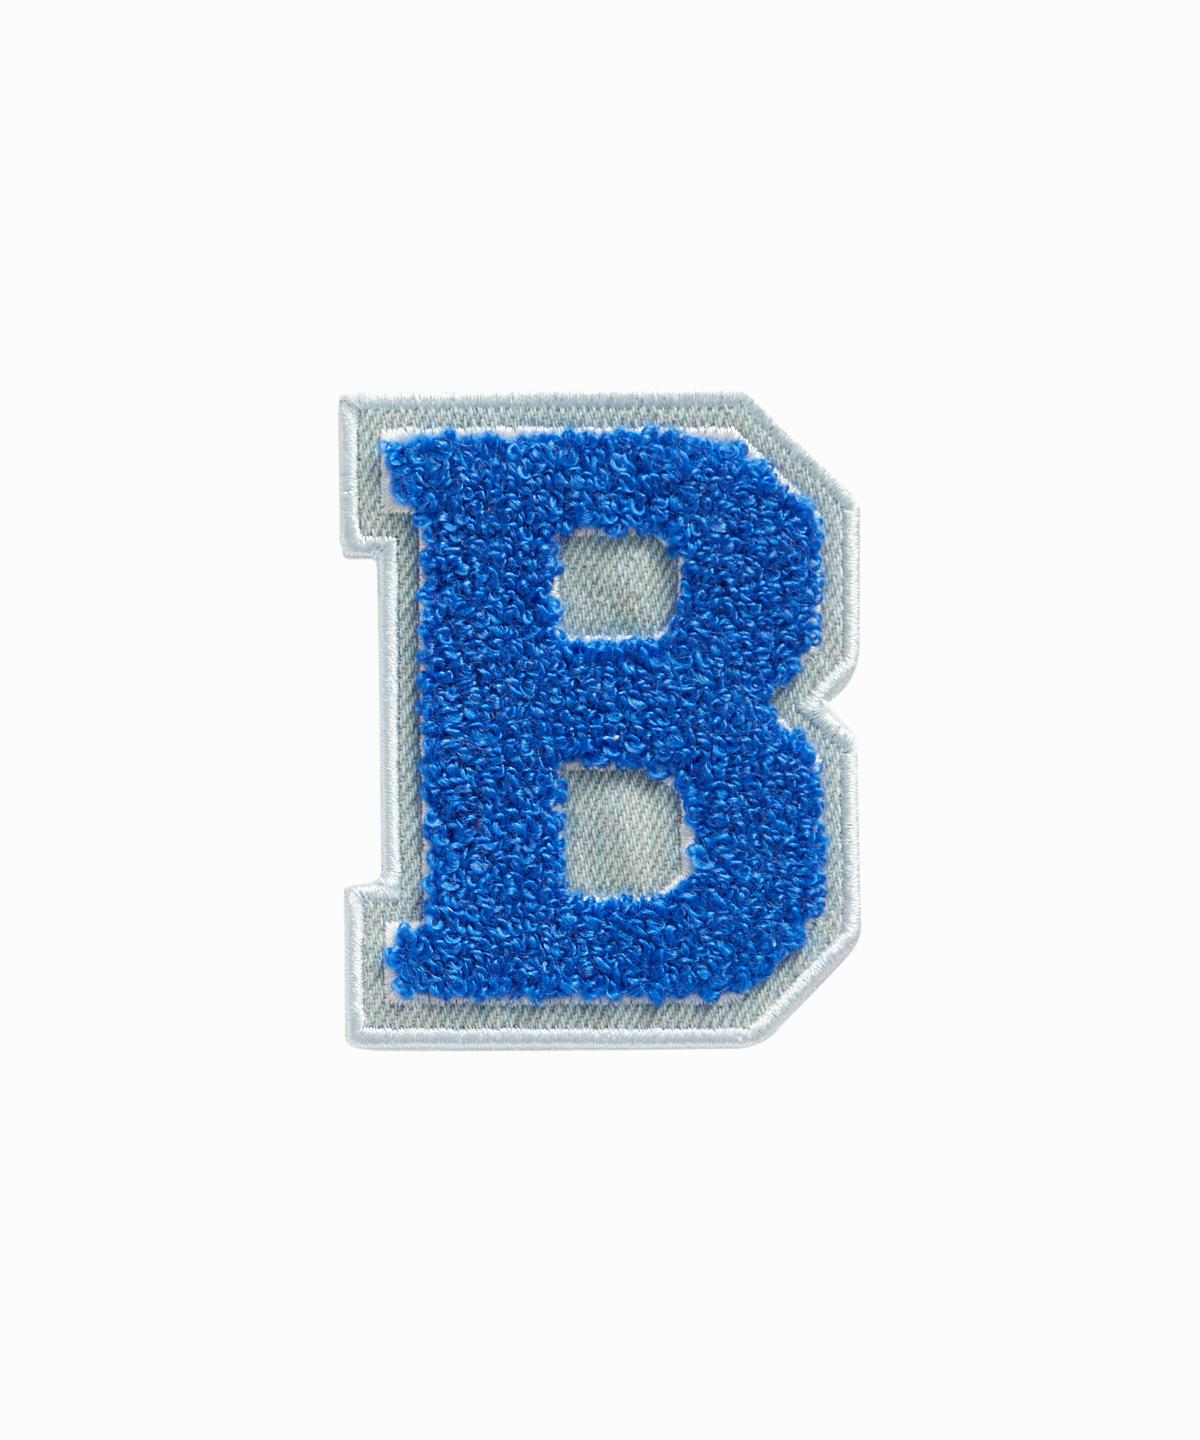 Blue Varsity Letter B Sticker Patch